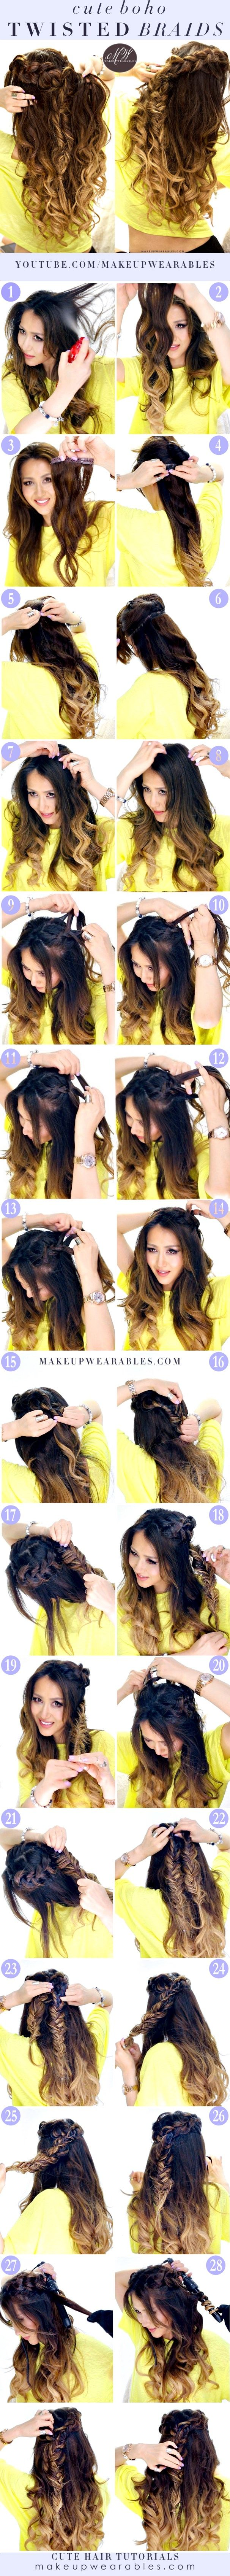 Combo Braid Half-Up Hairstyle |  Cute Everyday Hairstyles  with Curls